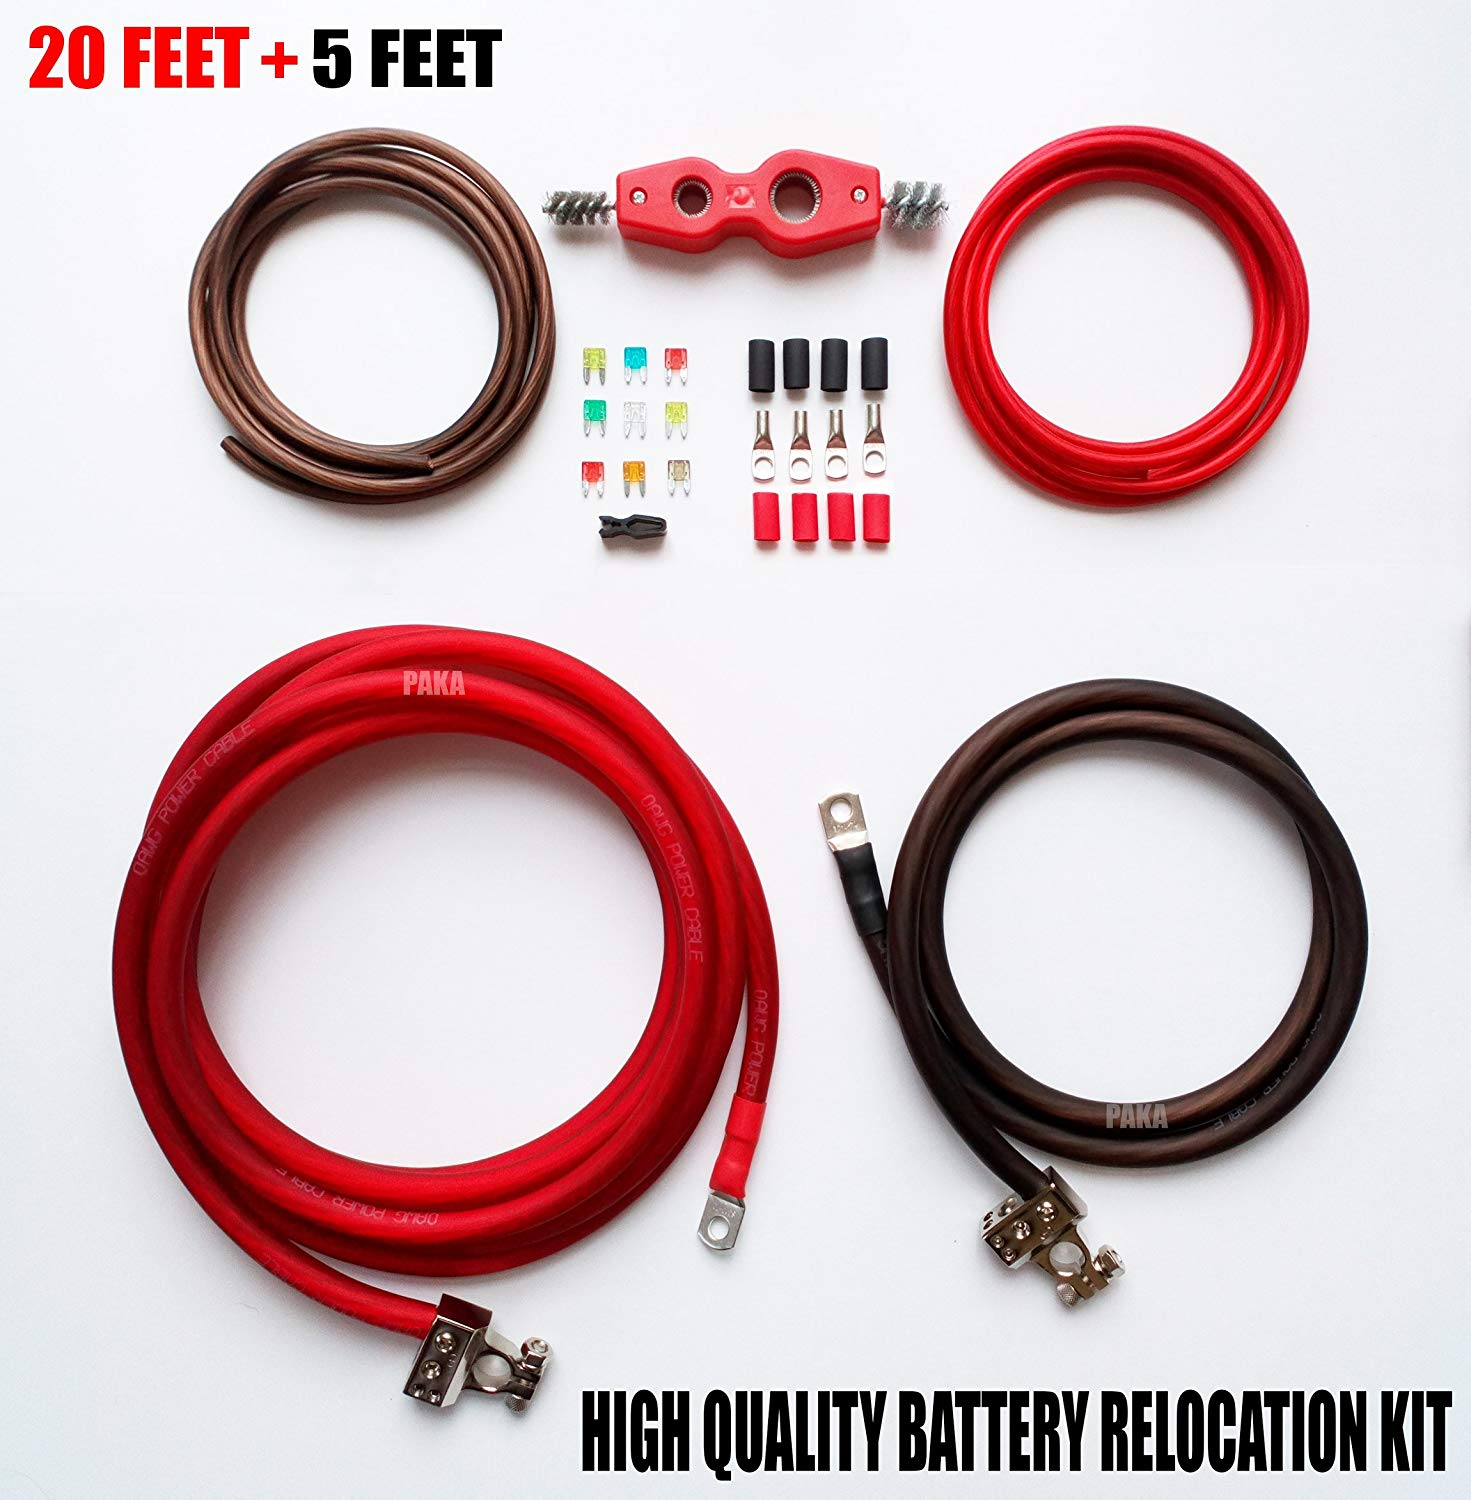 Battery Relocation Kit, 1/0 AWG Cable, Top Post 20 FT RED/ 5 FT BLACK